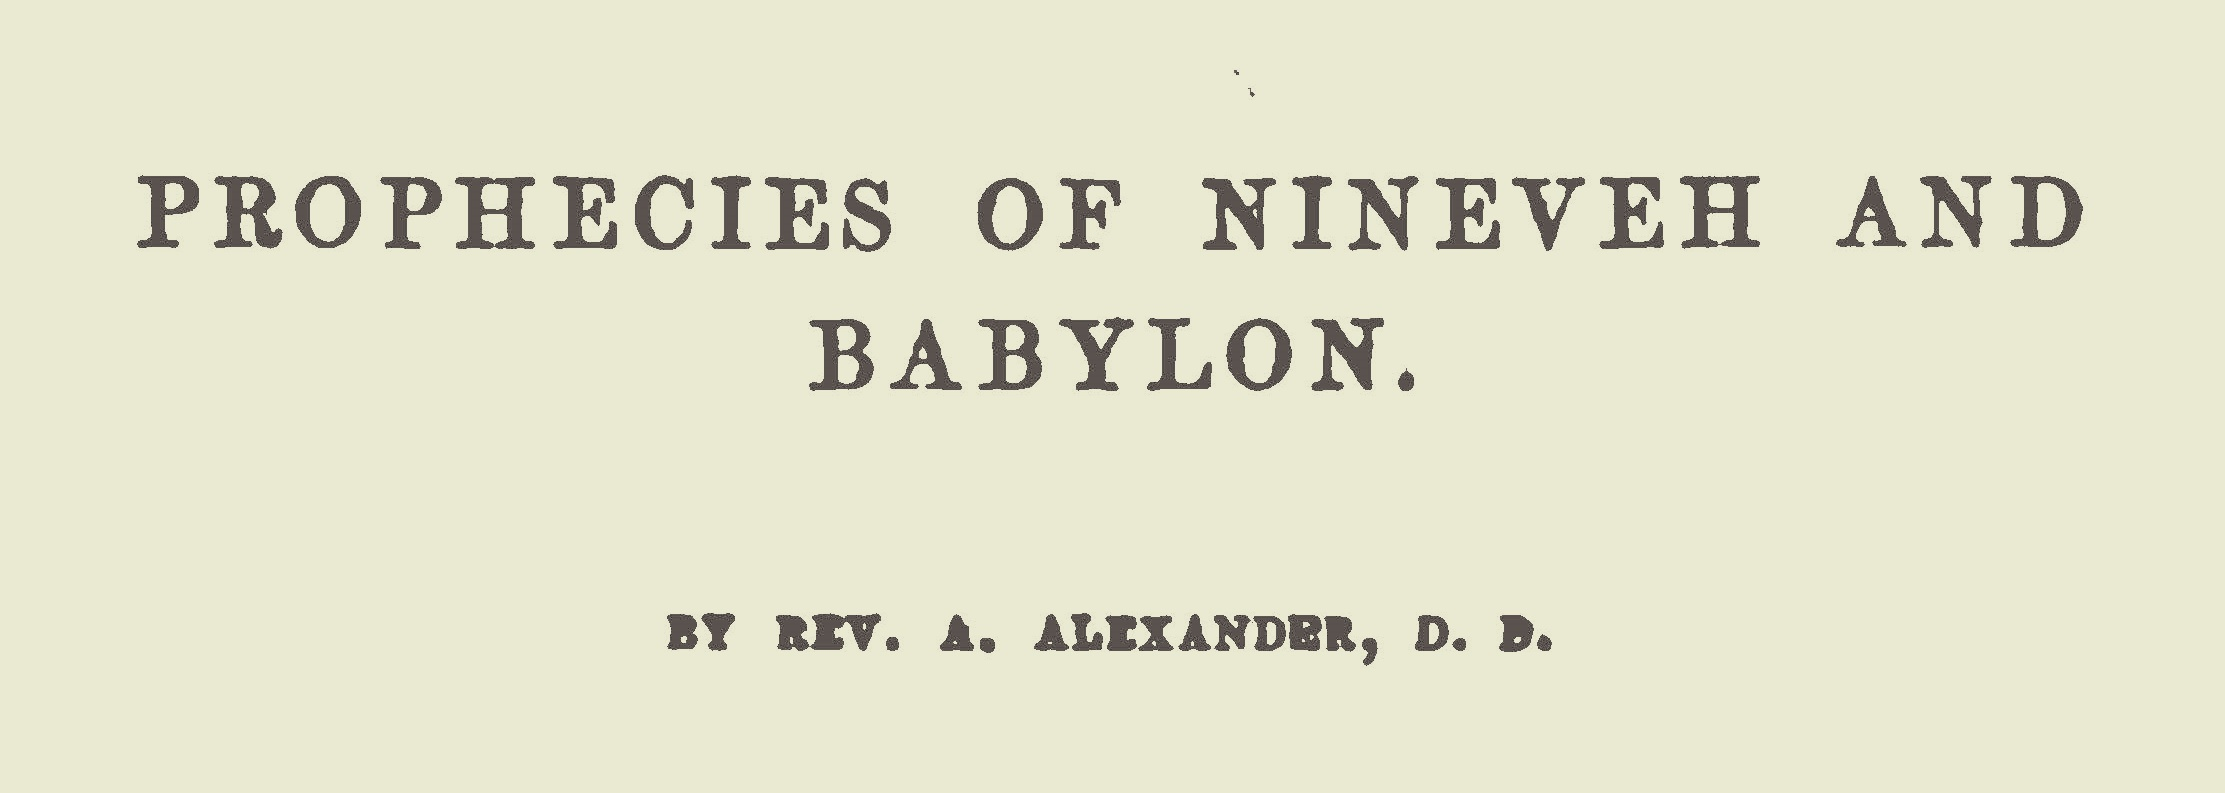 Alexander, Archibald, Prophecies of Ninevah and Babylon Title Page.jpg